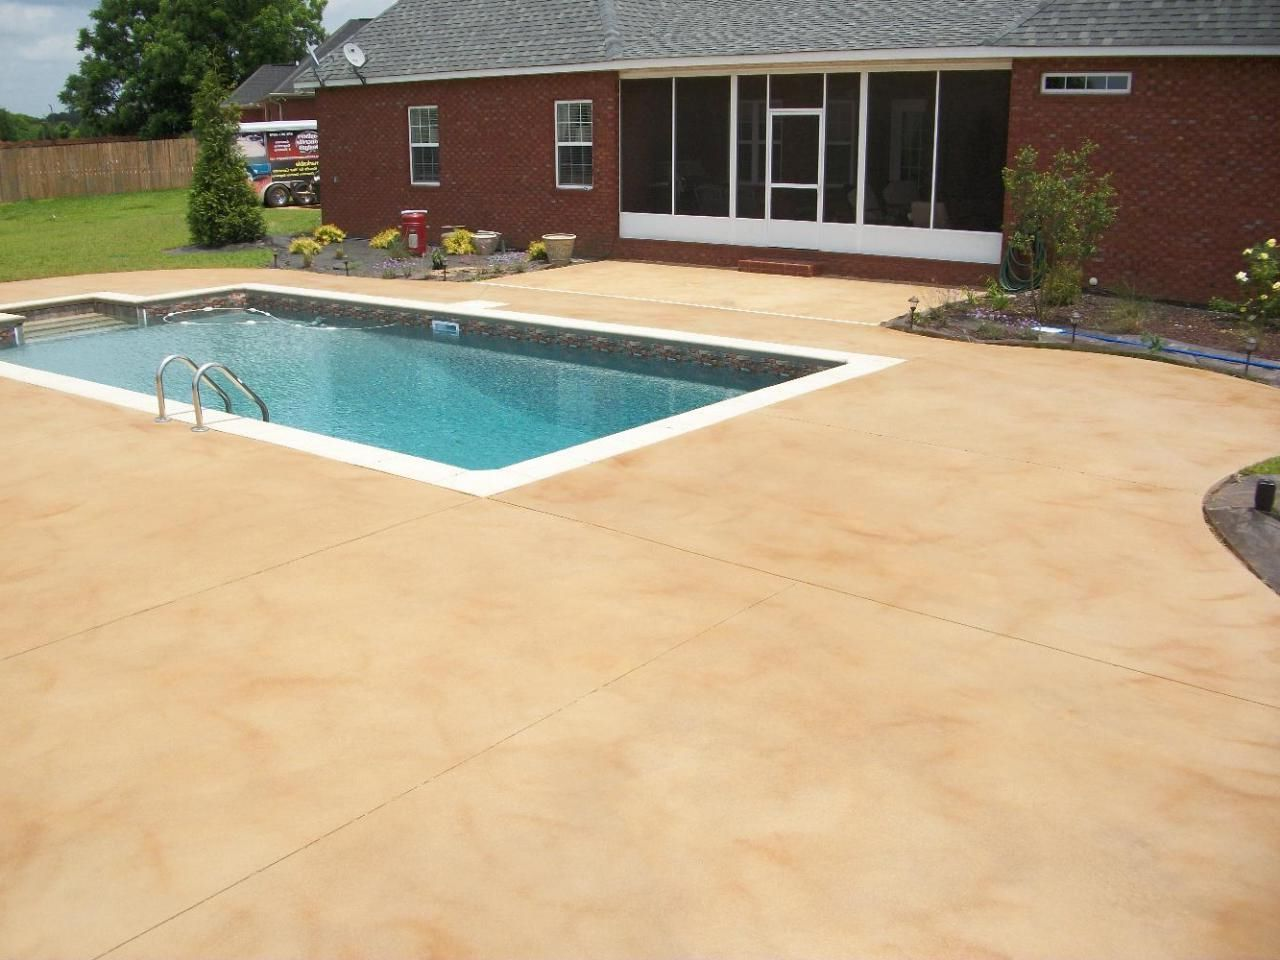 Best Paint For Concrete Pool Deck and Best Colors For A ...